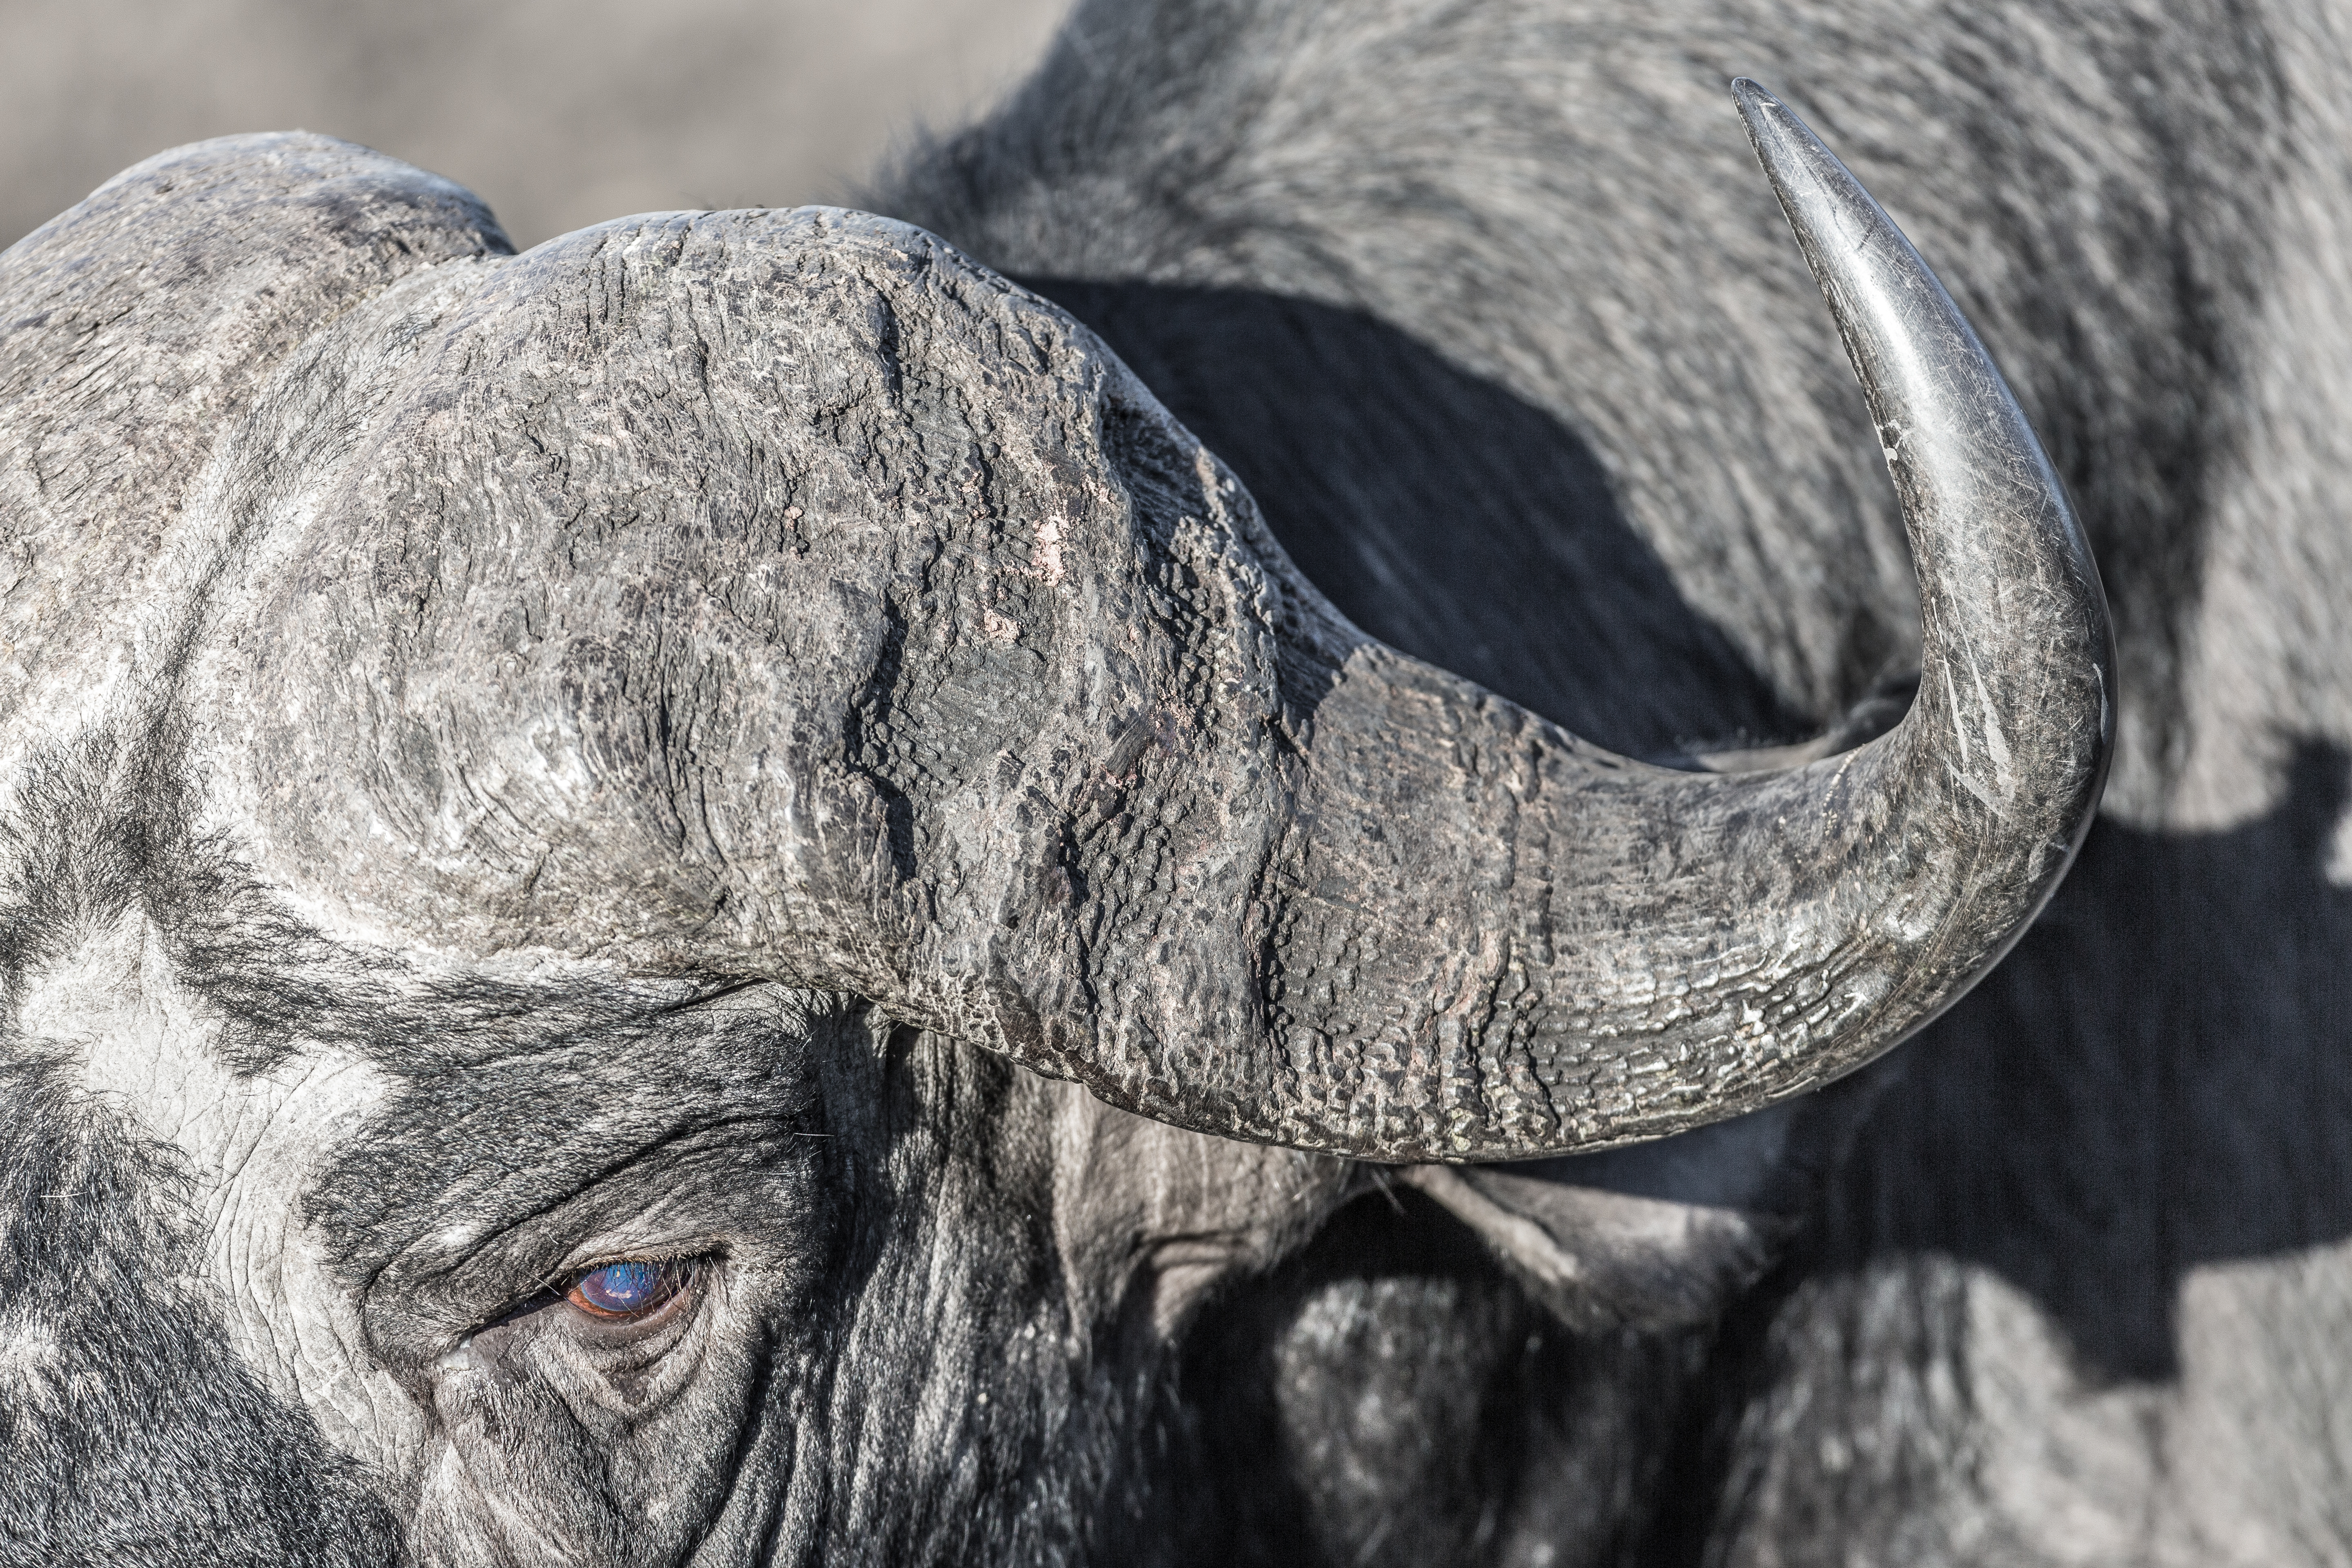 African Buffalo, Manyeleti Game Reserve, South Africa